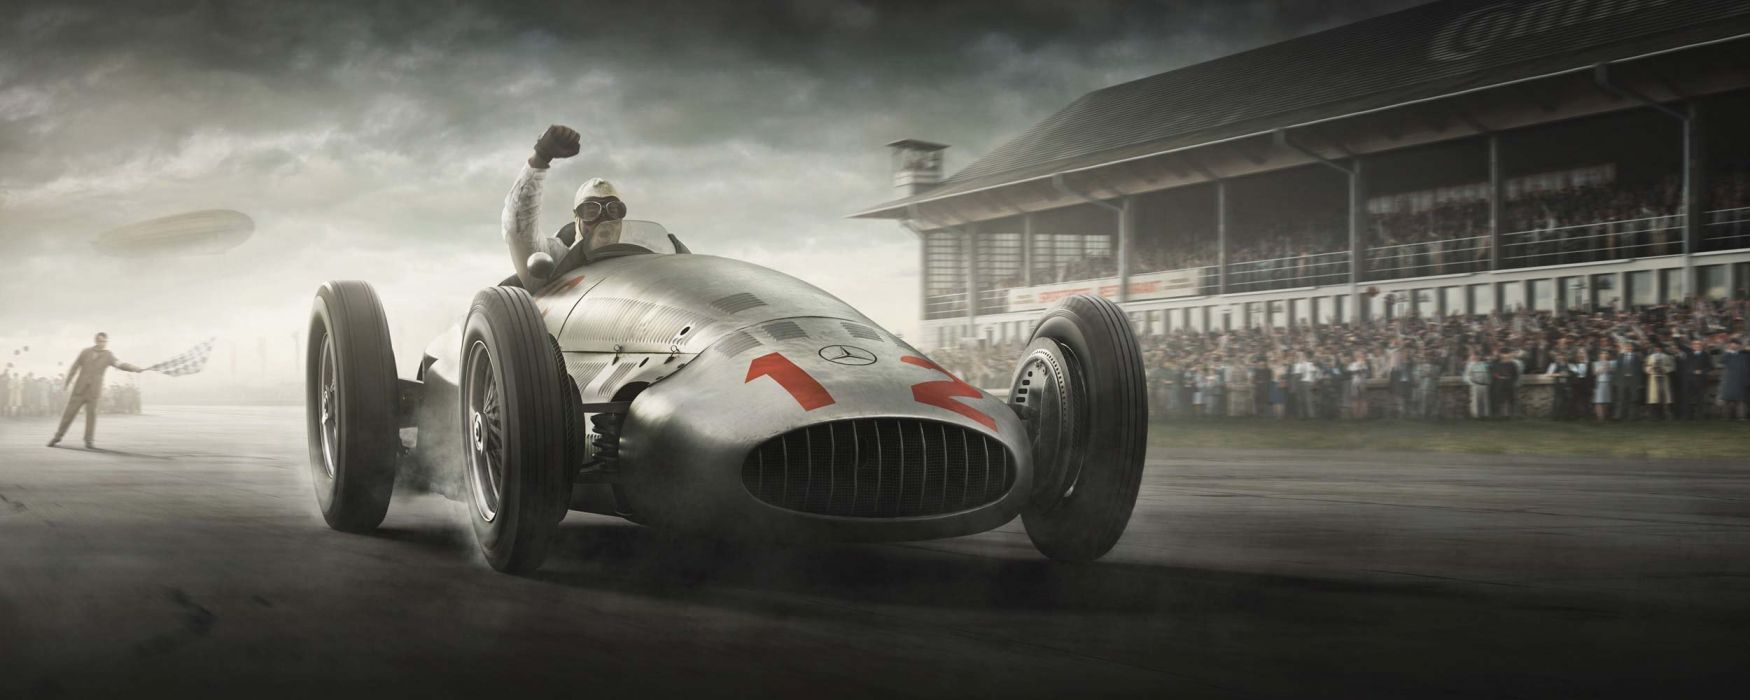 Silver Arrows Project 3D Cartoon Pre War Animation Race Cars Gran Prix Mercedes-Benz HD wallpaper